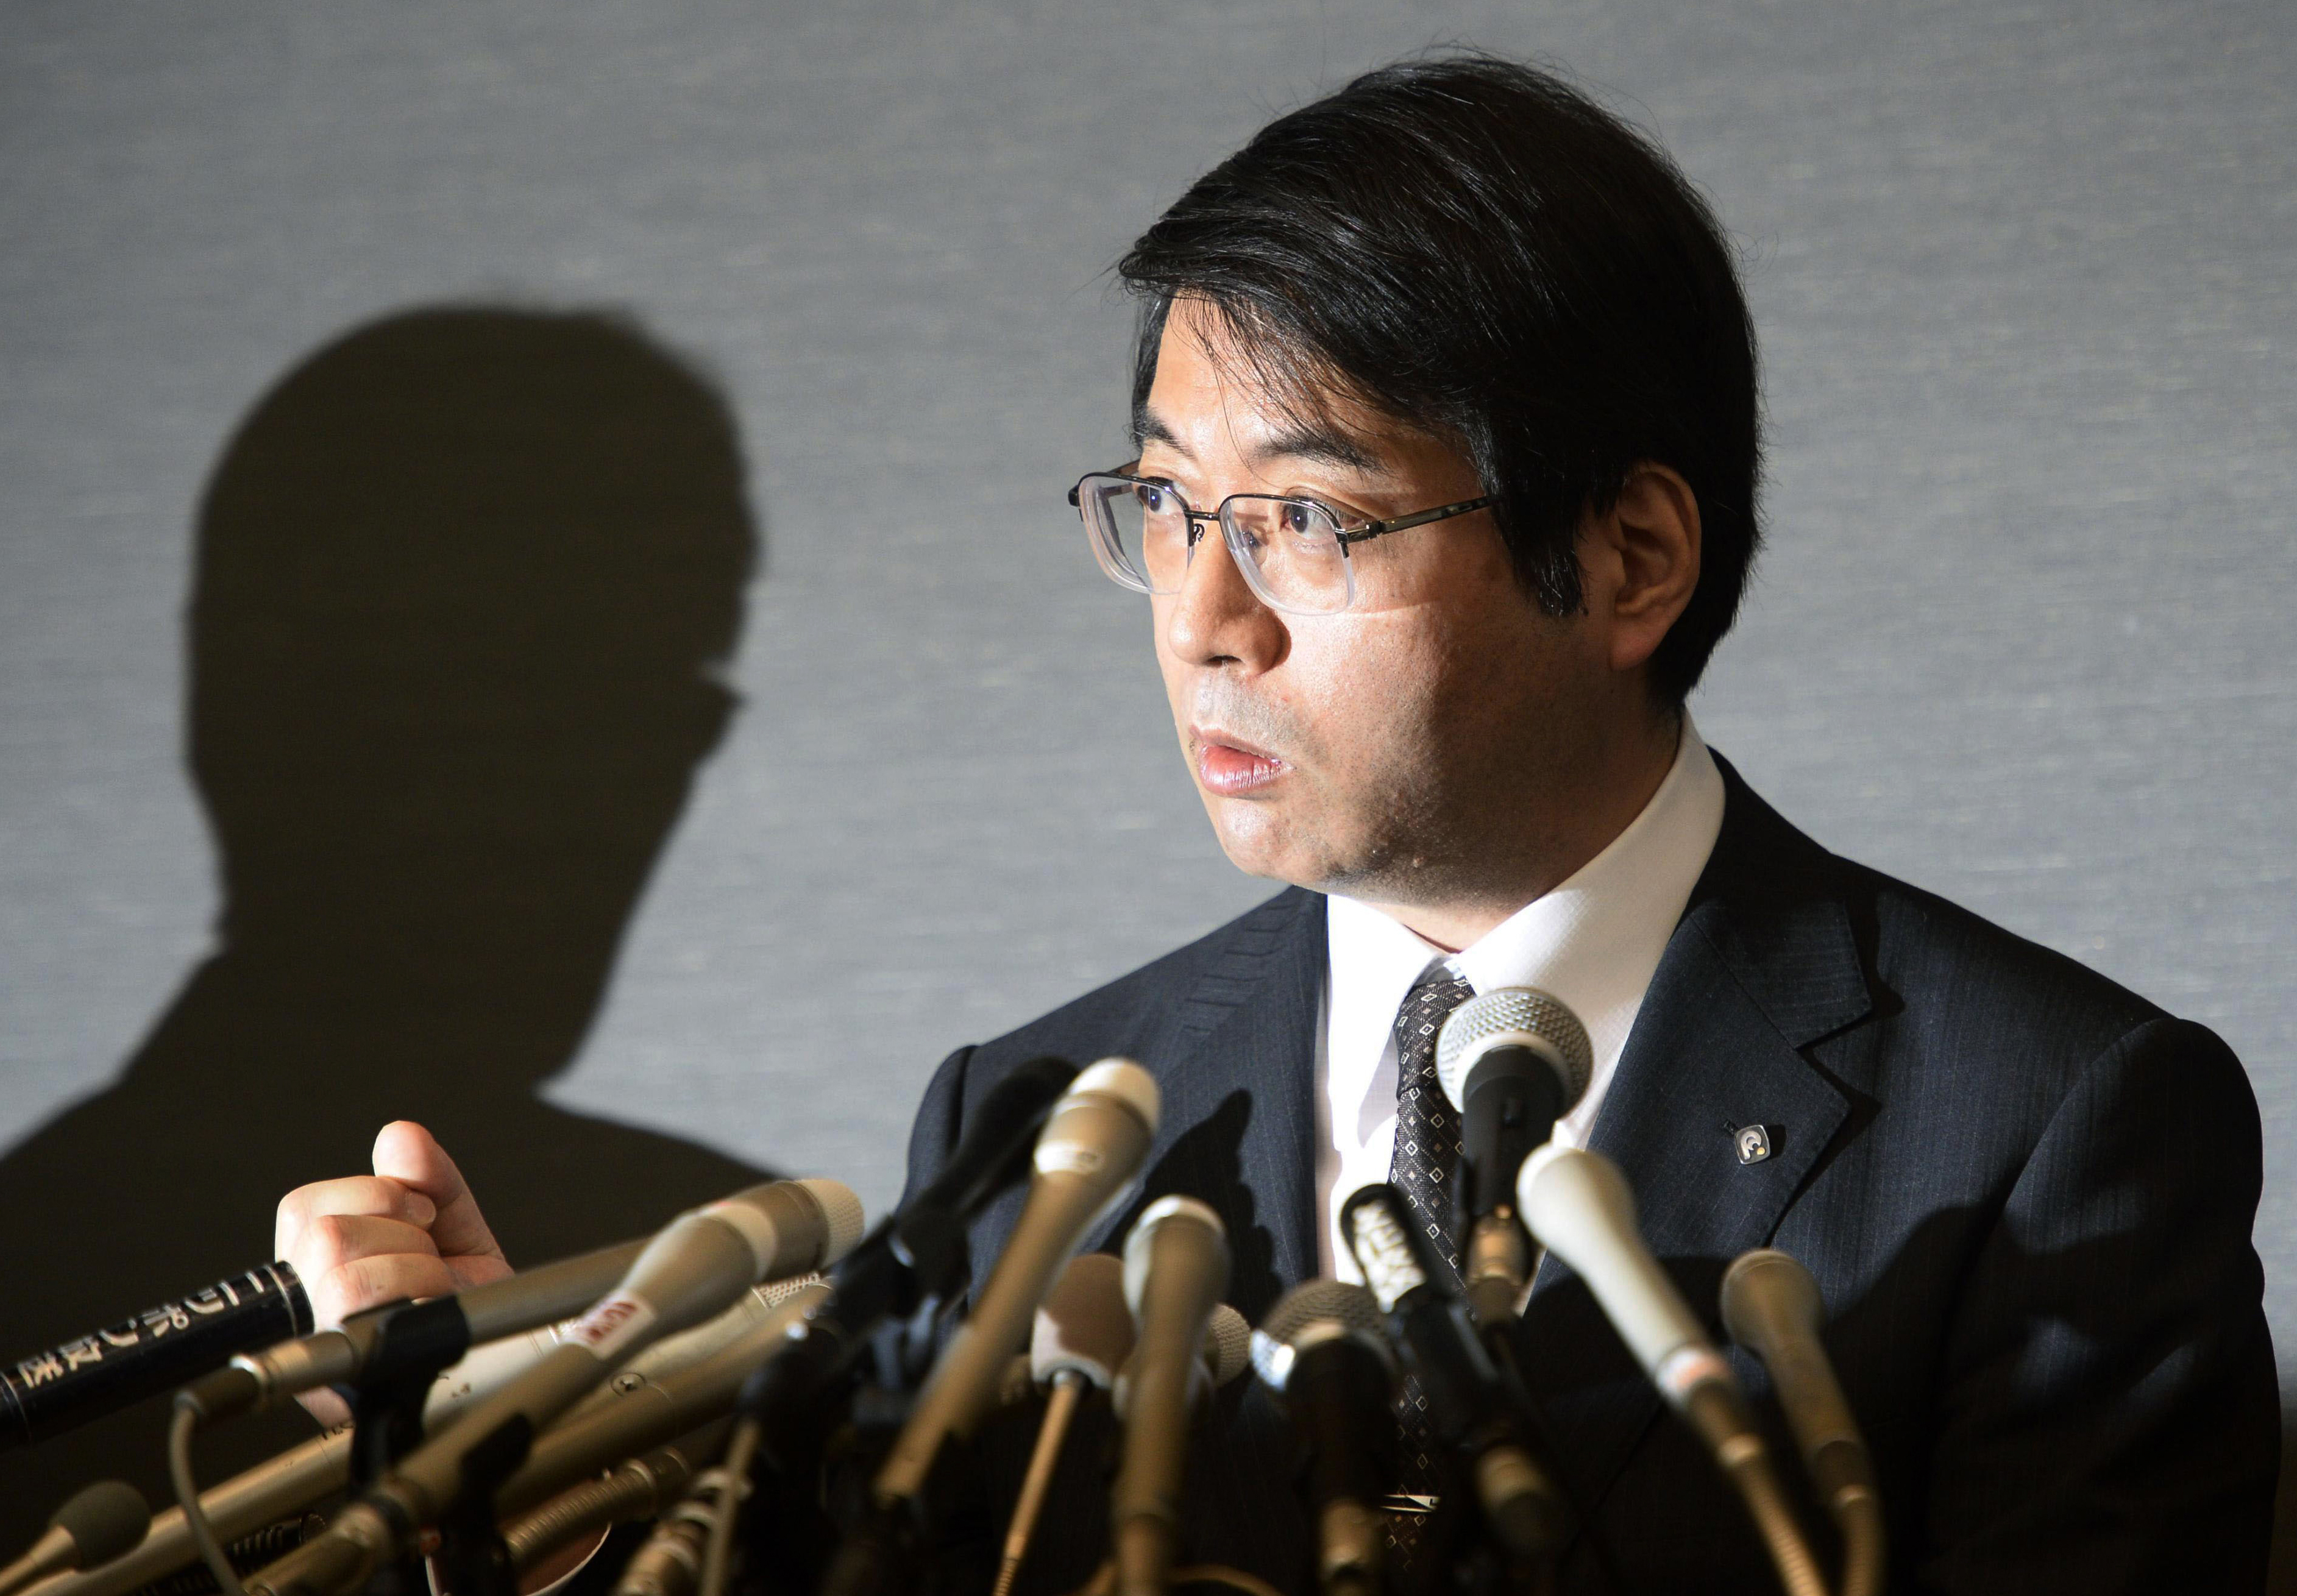 Yoshiki Sasai, deputy chief of the RIKEN Center for Developmental Biology, speaks during a press conference in Tokyo on April 16, 2014. Police said Sasai, 52, was found dead on Tuesday, Aug. 5, 2014.